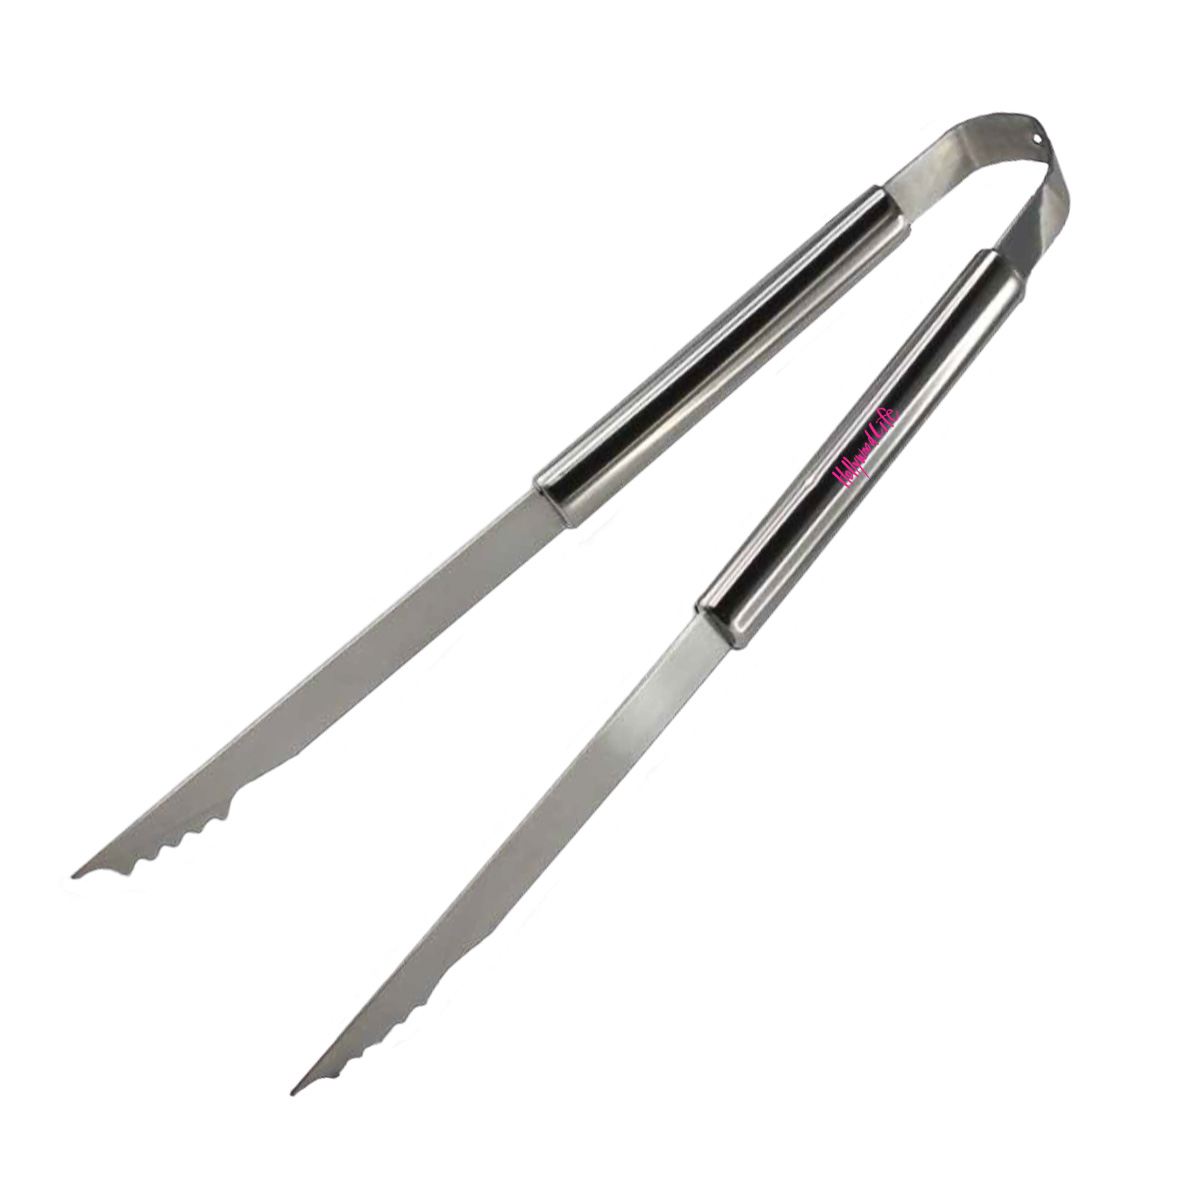 OVERSIZED STAINLESS STEEL BARBEQUE GRILLING TONGS